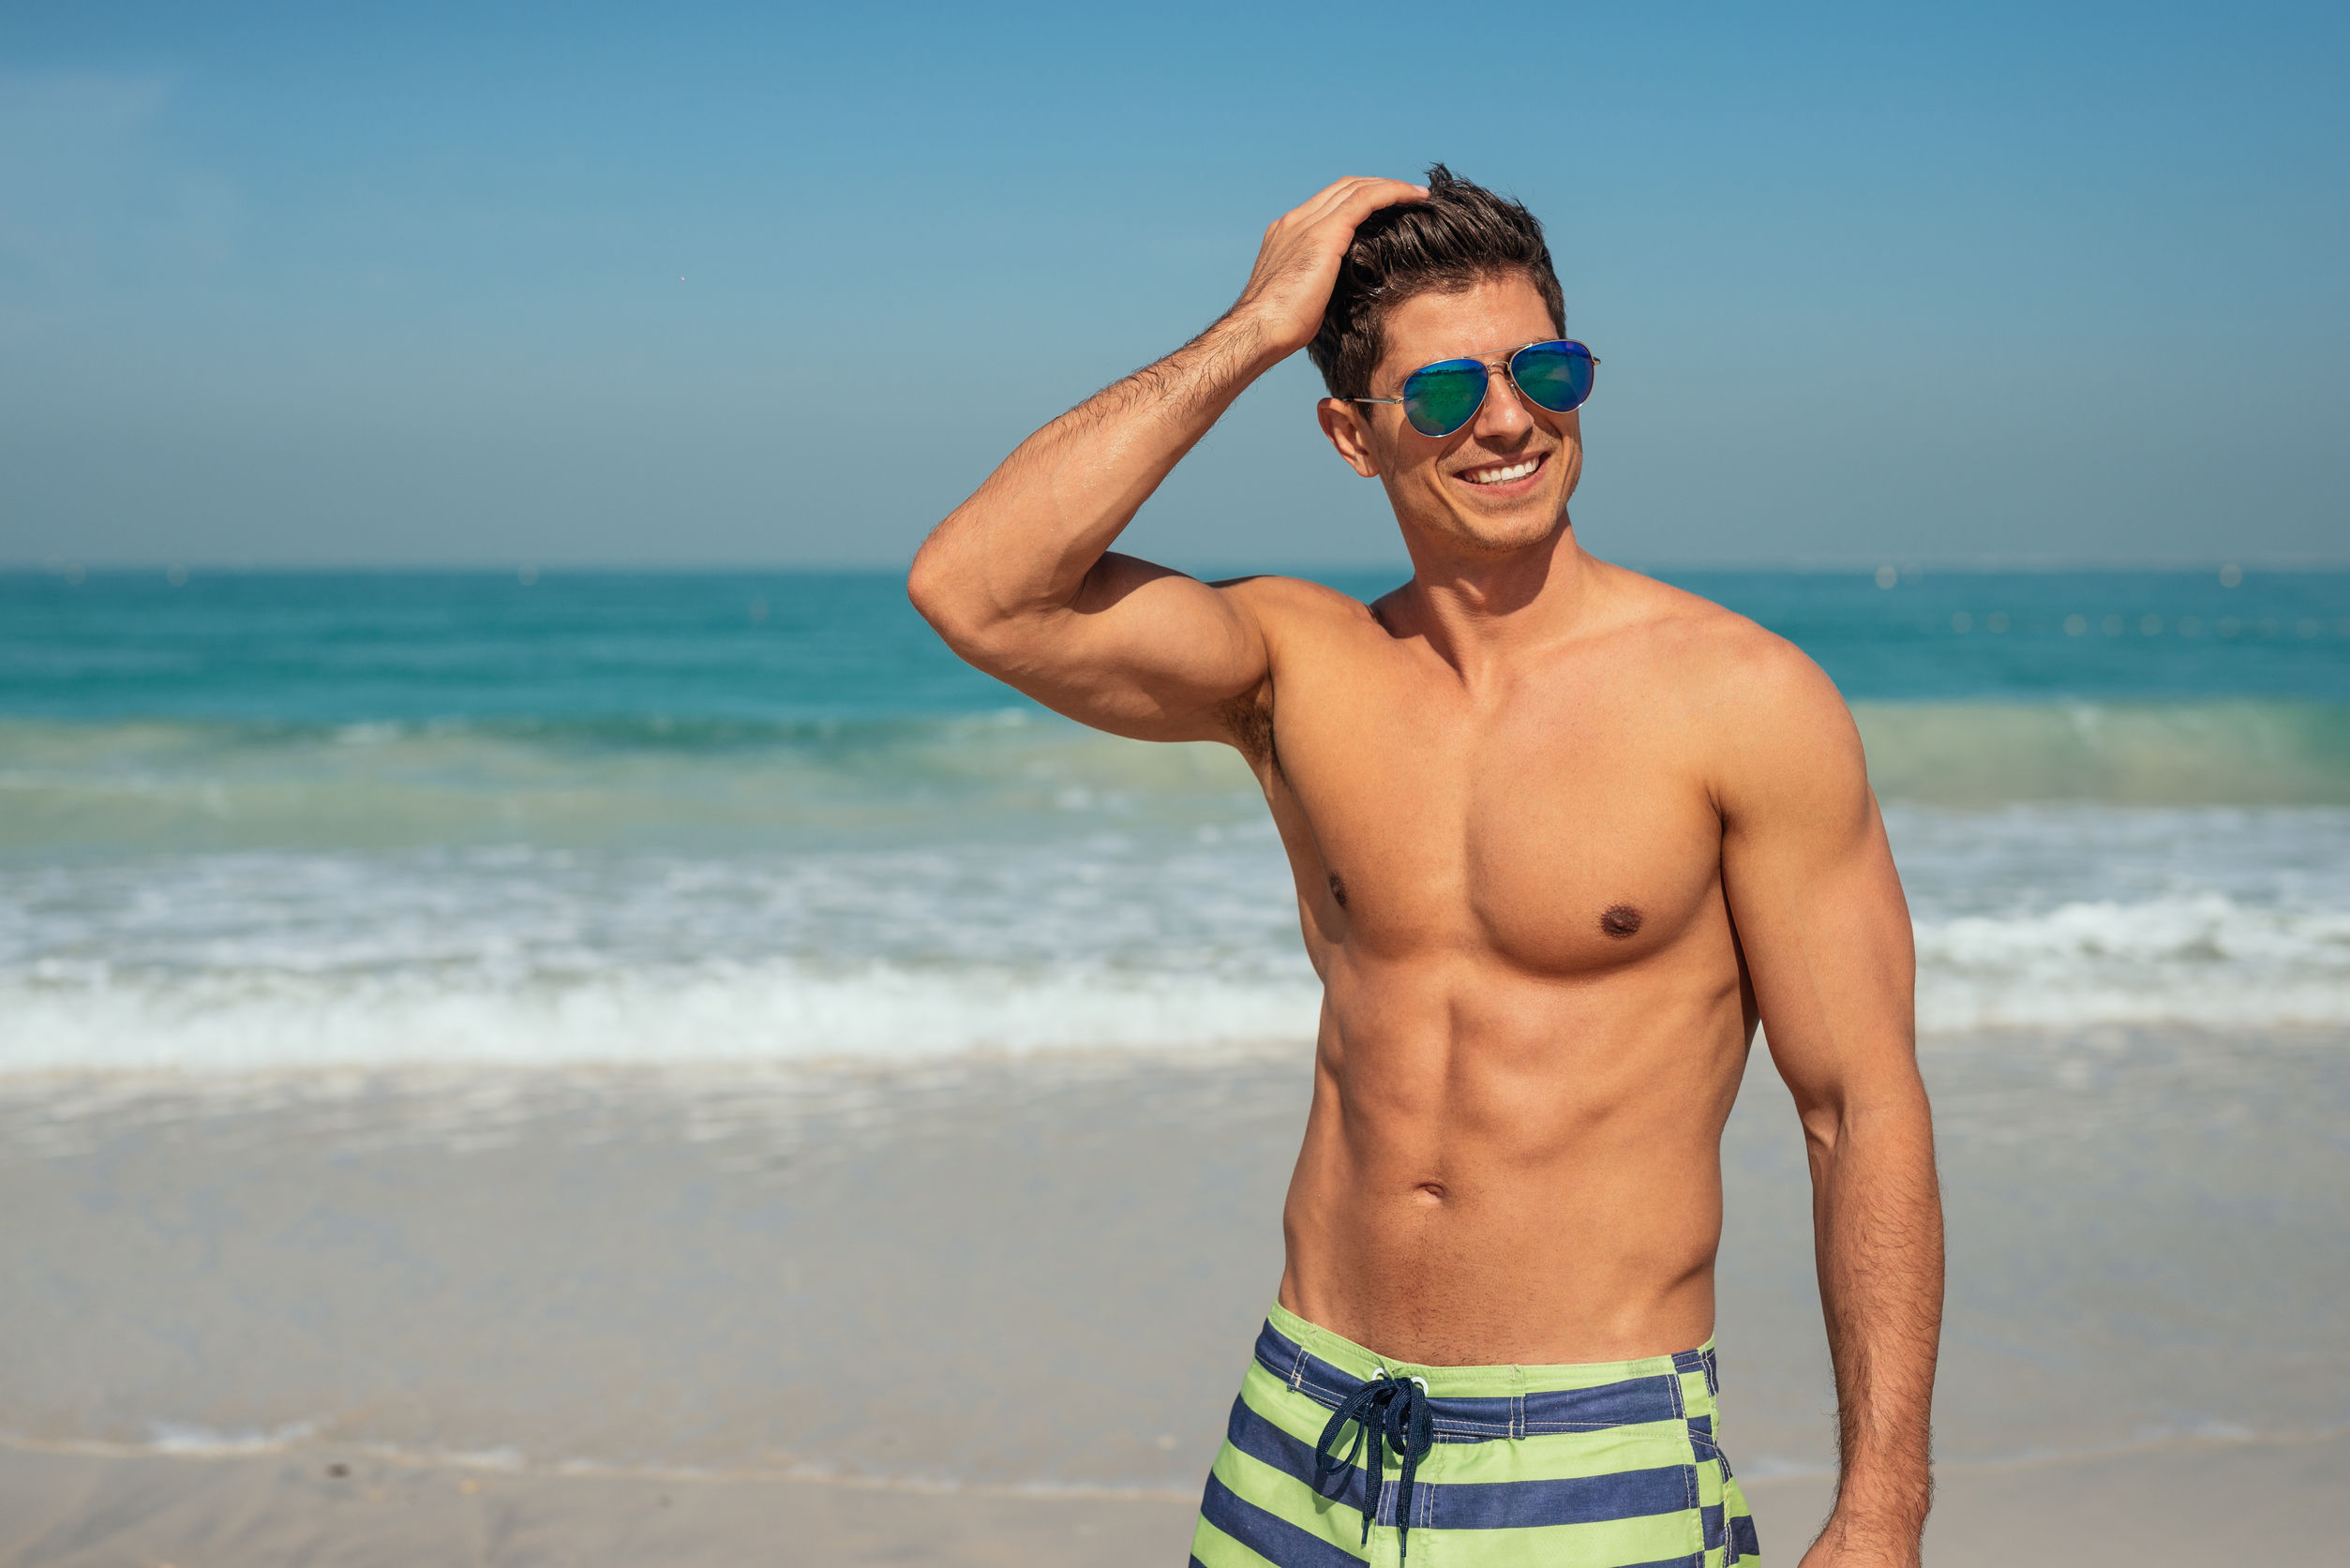 62373054 - handsome smiling man enjoying day on the beach.